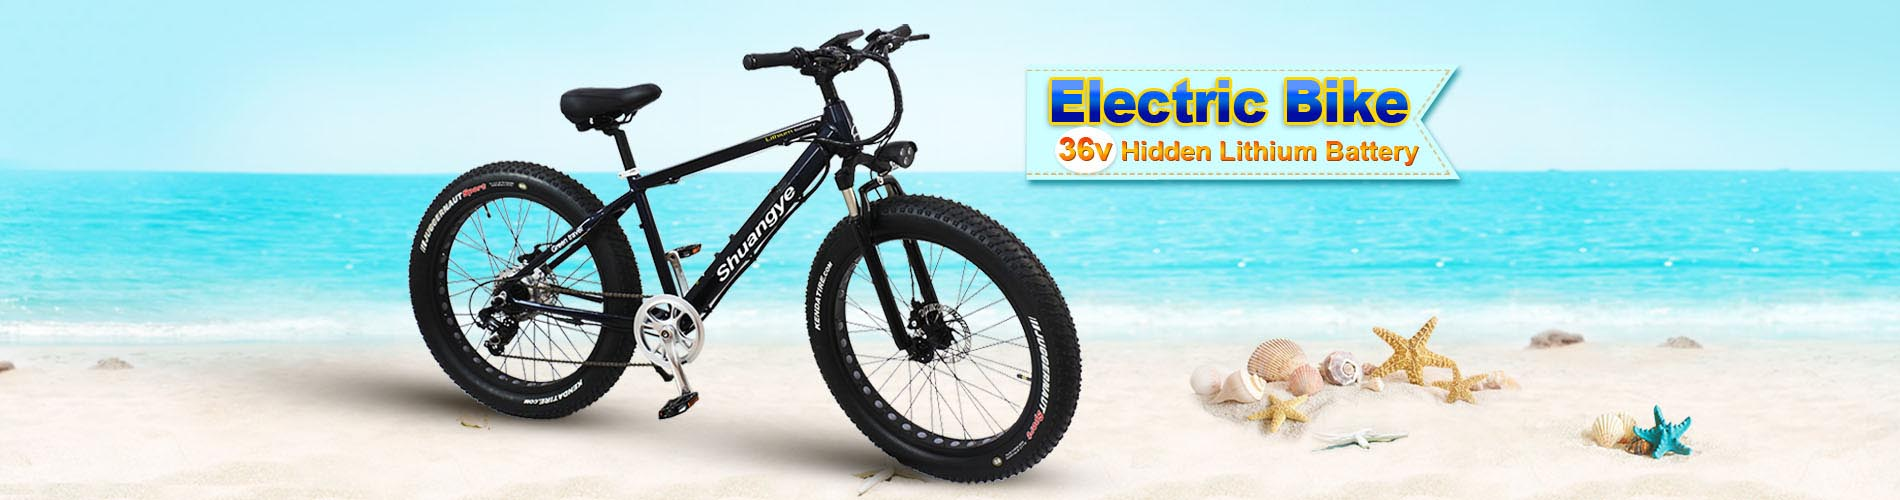 Dark blue 20 inch folding electric bicycle